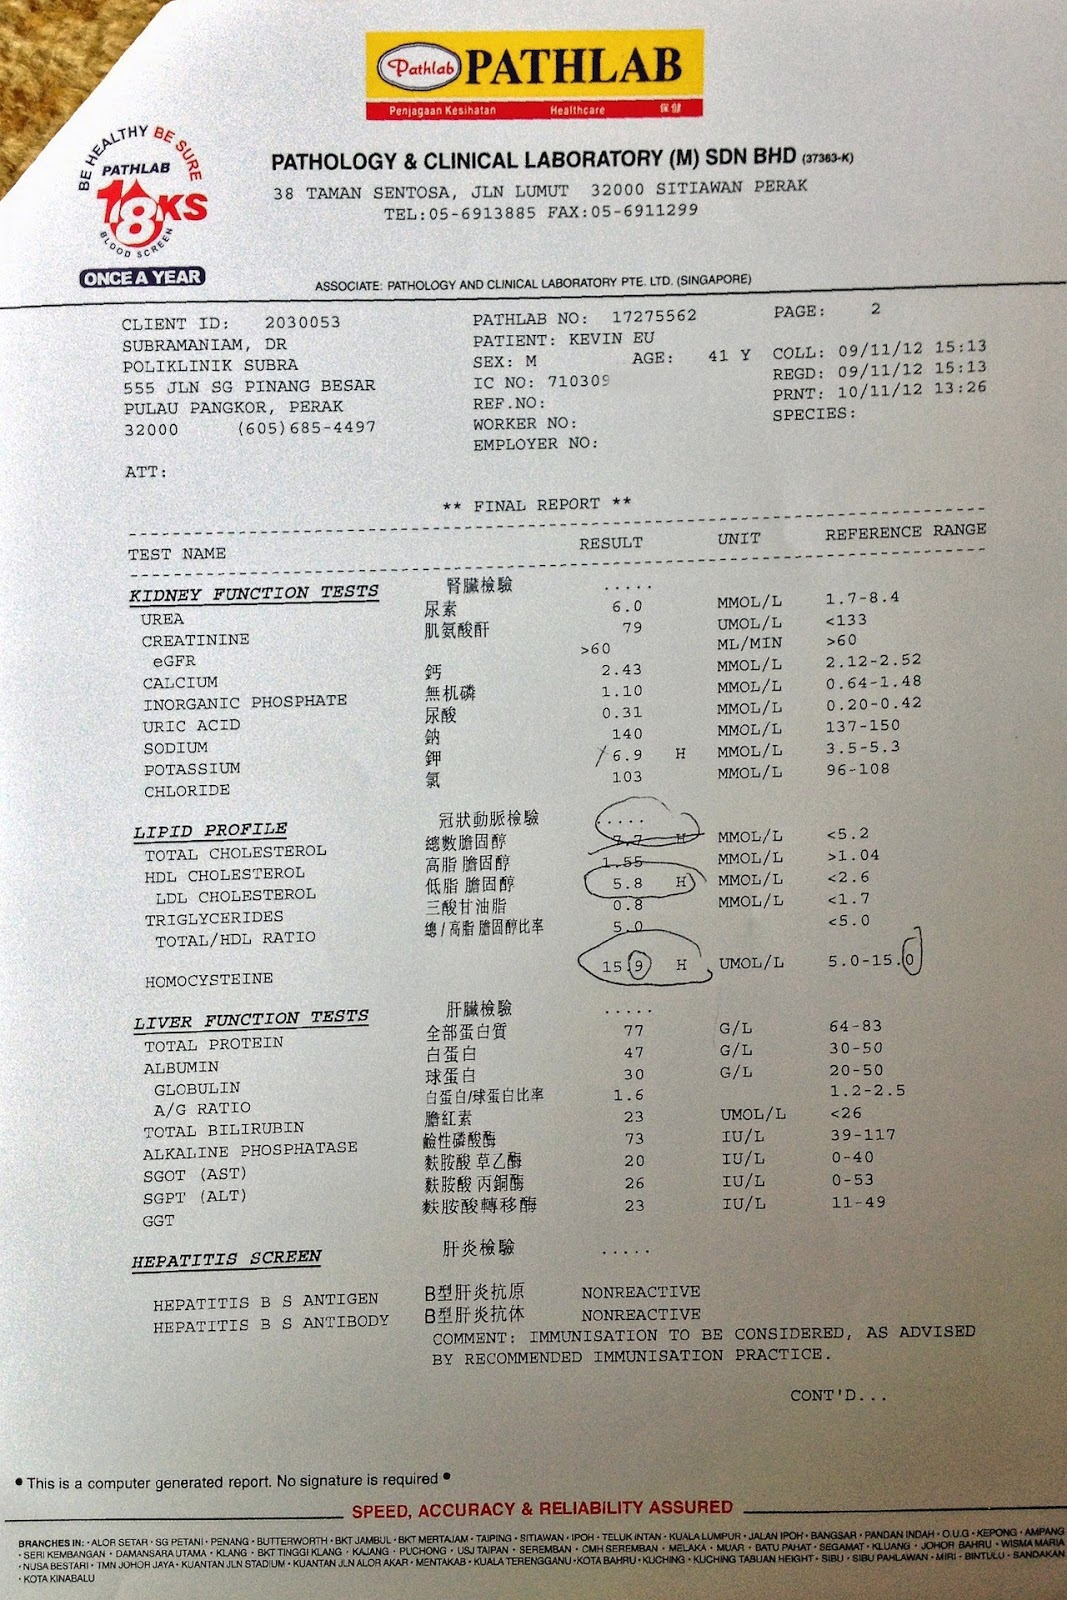 My Two Sen Blood Test Results